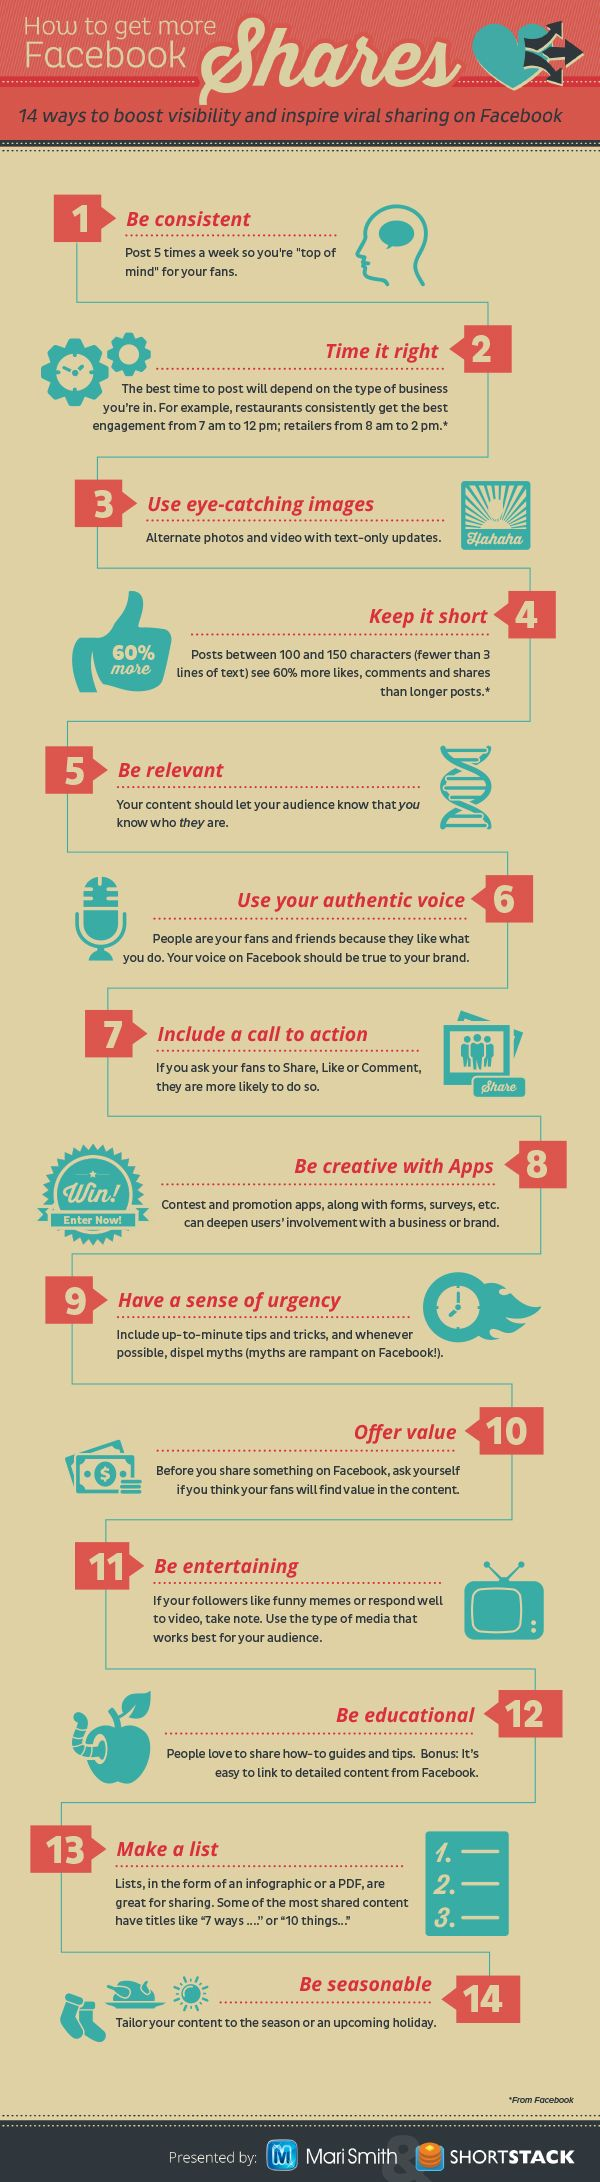 In this fun INFOGRAPHIC, you'll find 14 different ways to help boost your Facebook visibility and inspire more SHARES!